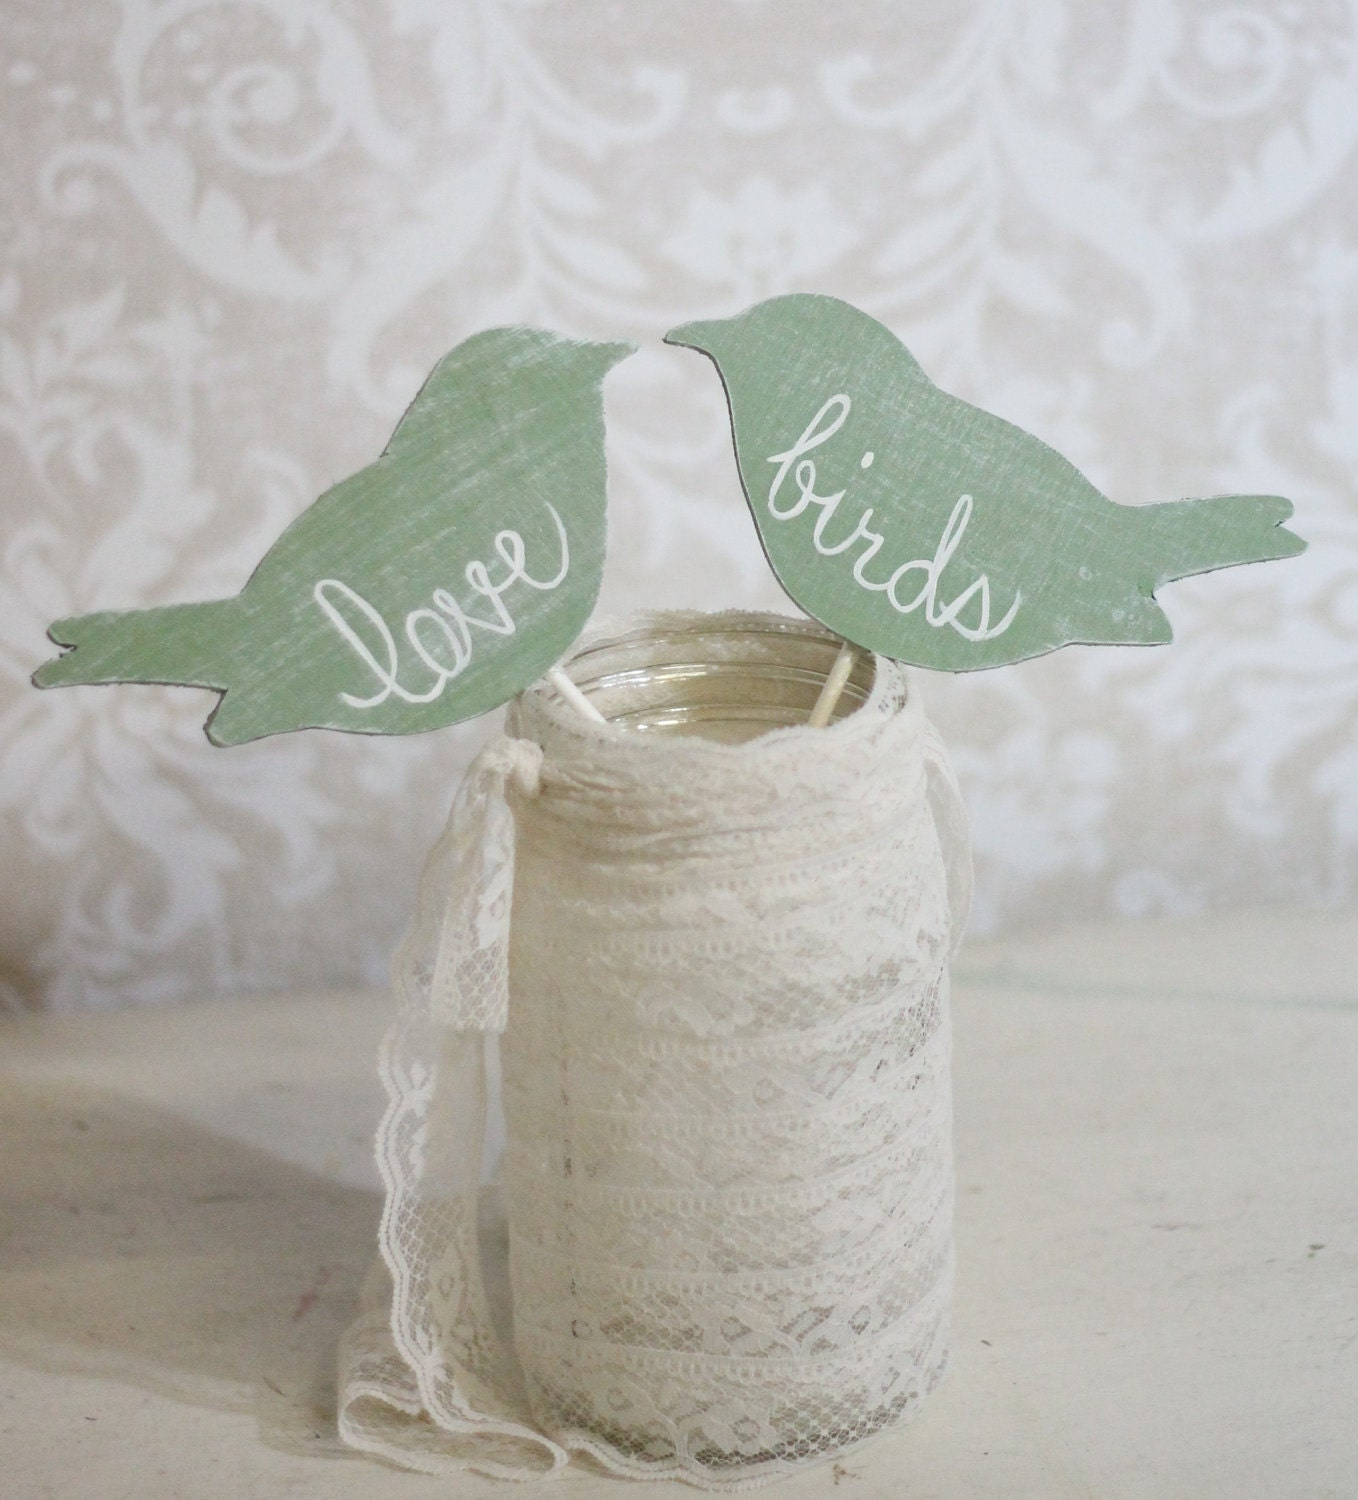 Birdhouse Wedding Decorations : Wedding cake topper love birds shabby chic by braggingbags